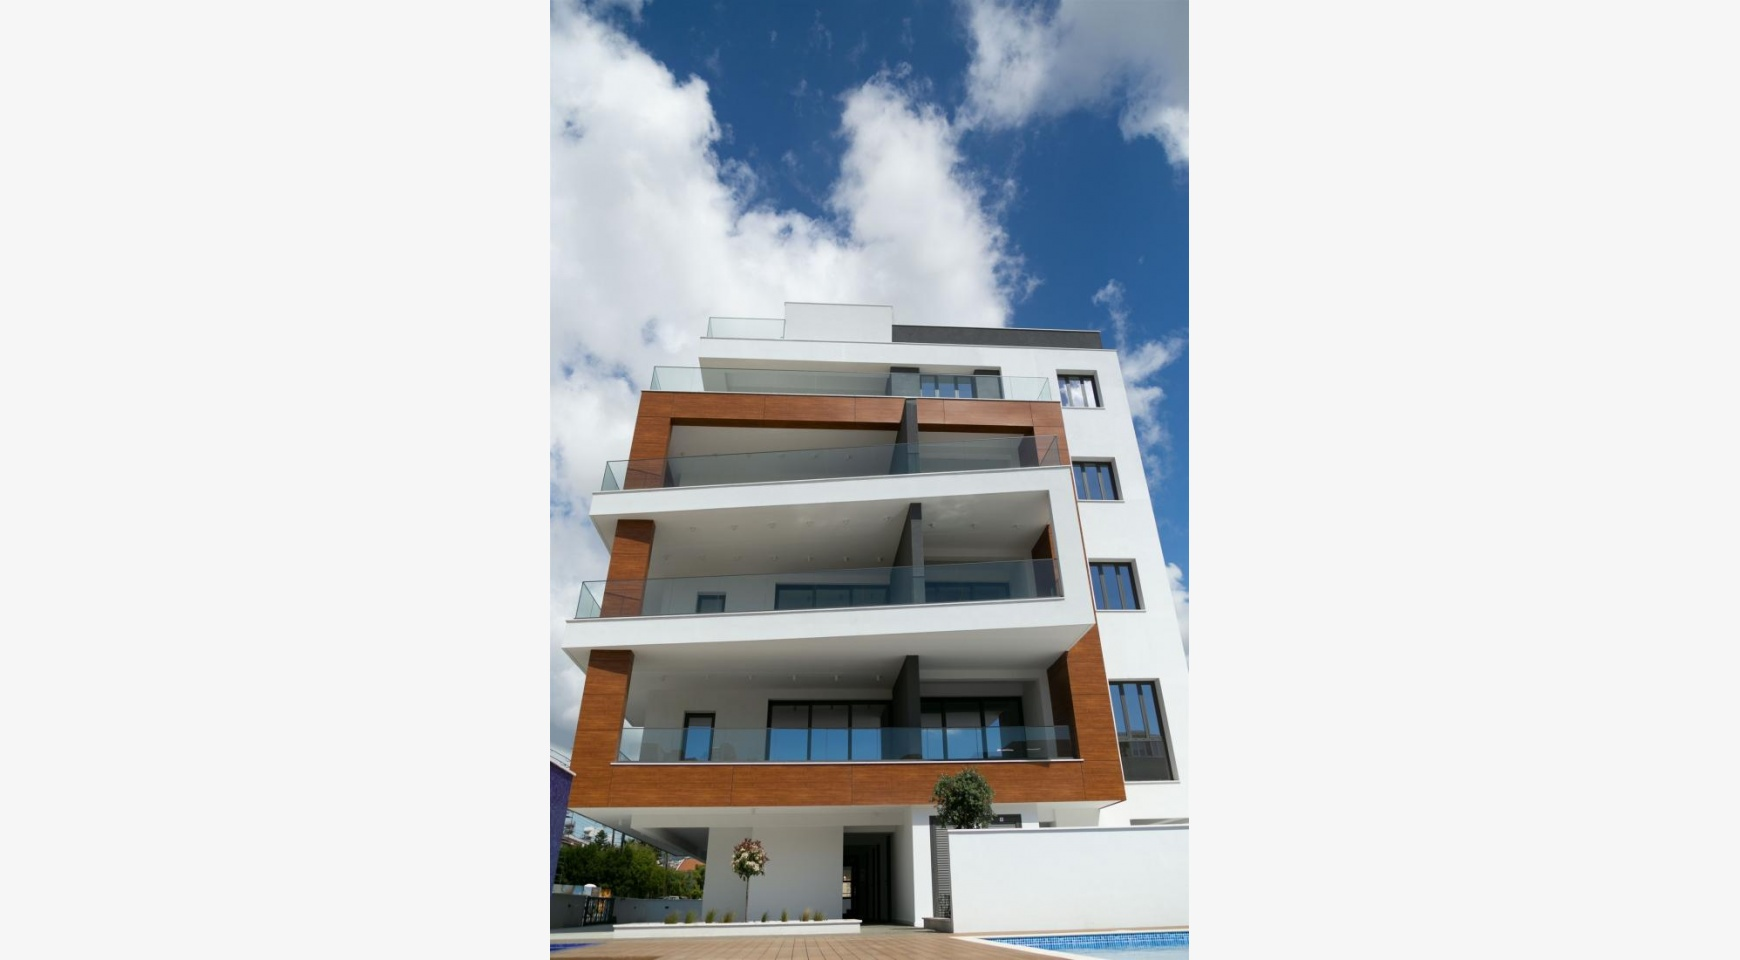 Malibu Residence. Modern 2 Bedroom Apartment 301 within a New Gated Complex - 5